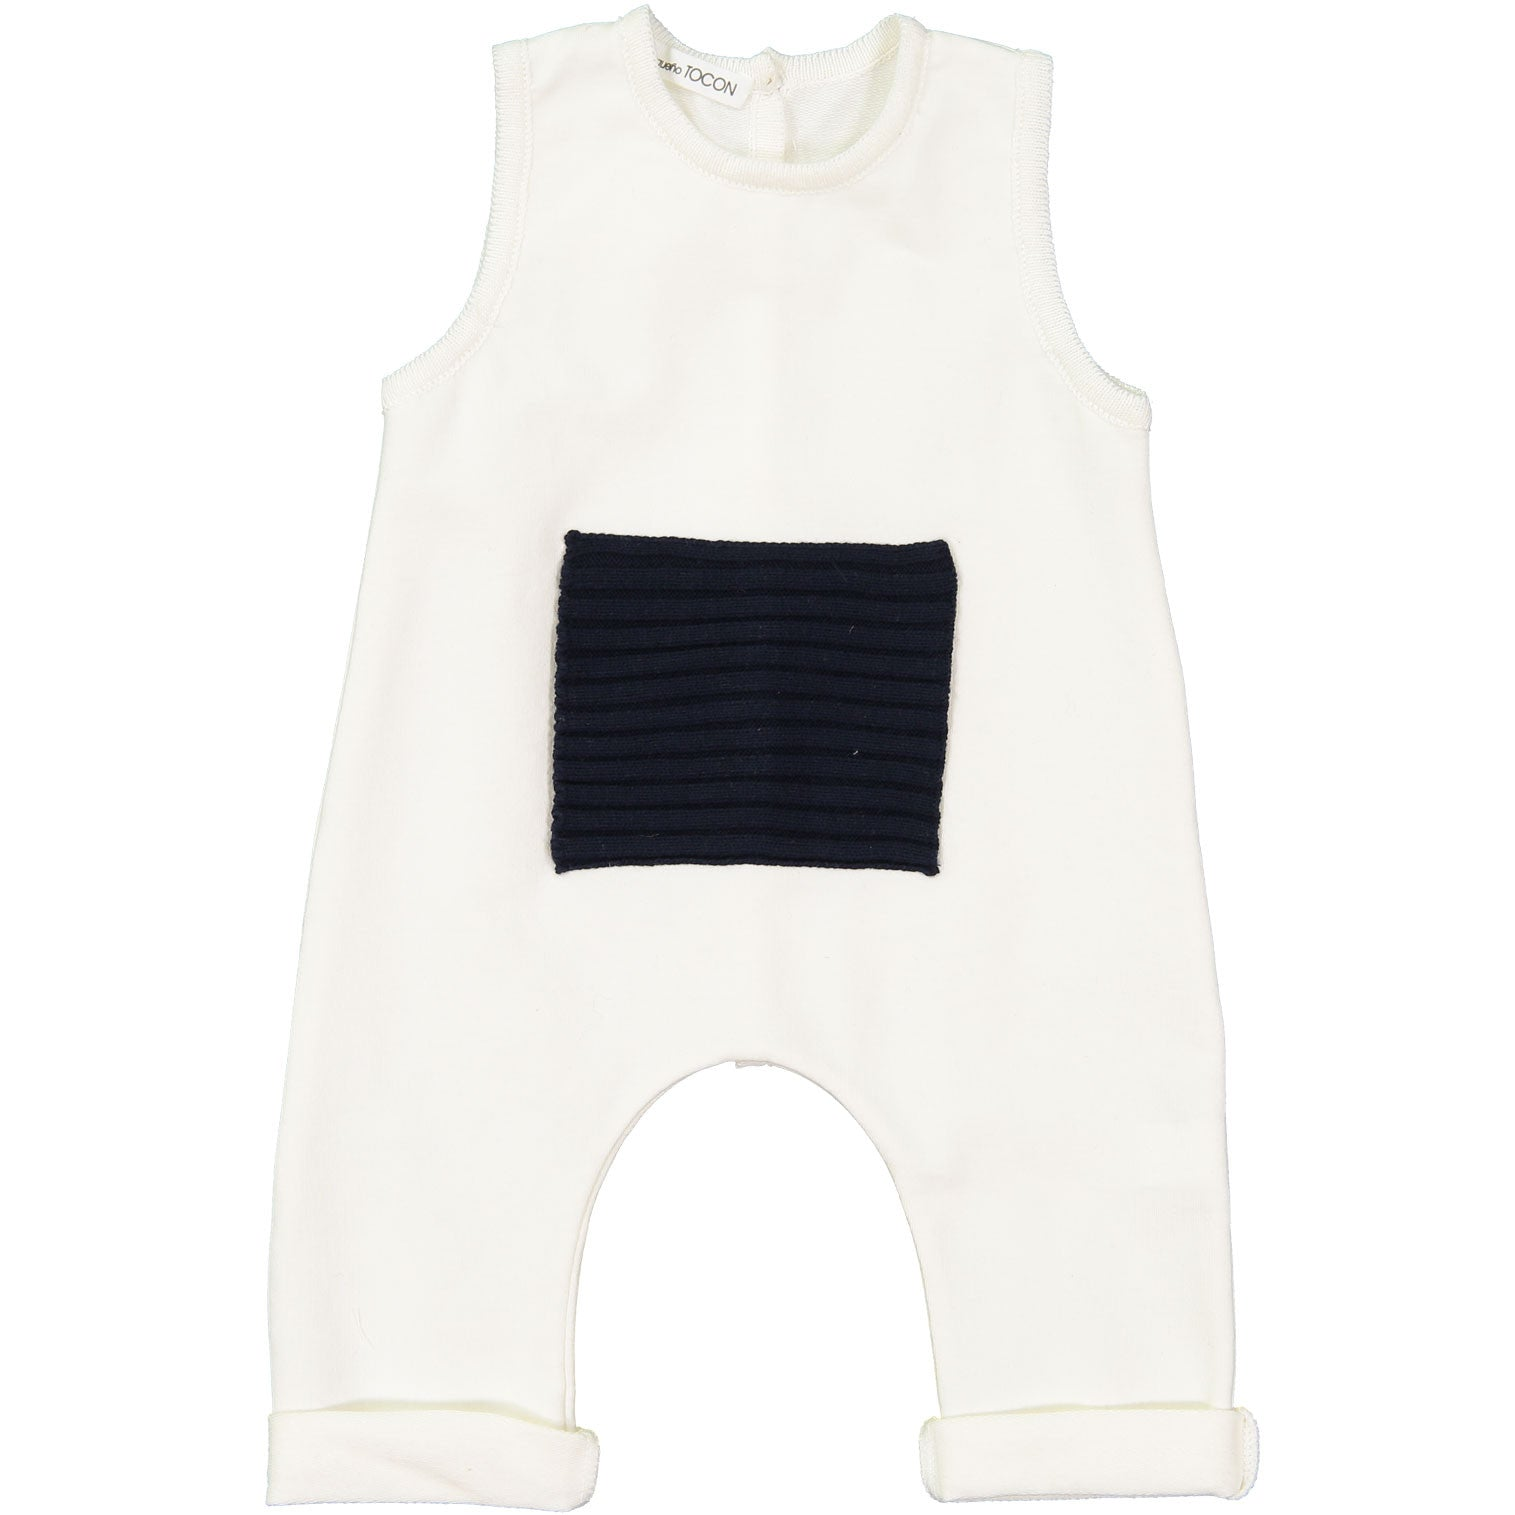 Pequeno Tocon Natural Pocket Romper - Ladida